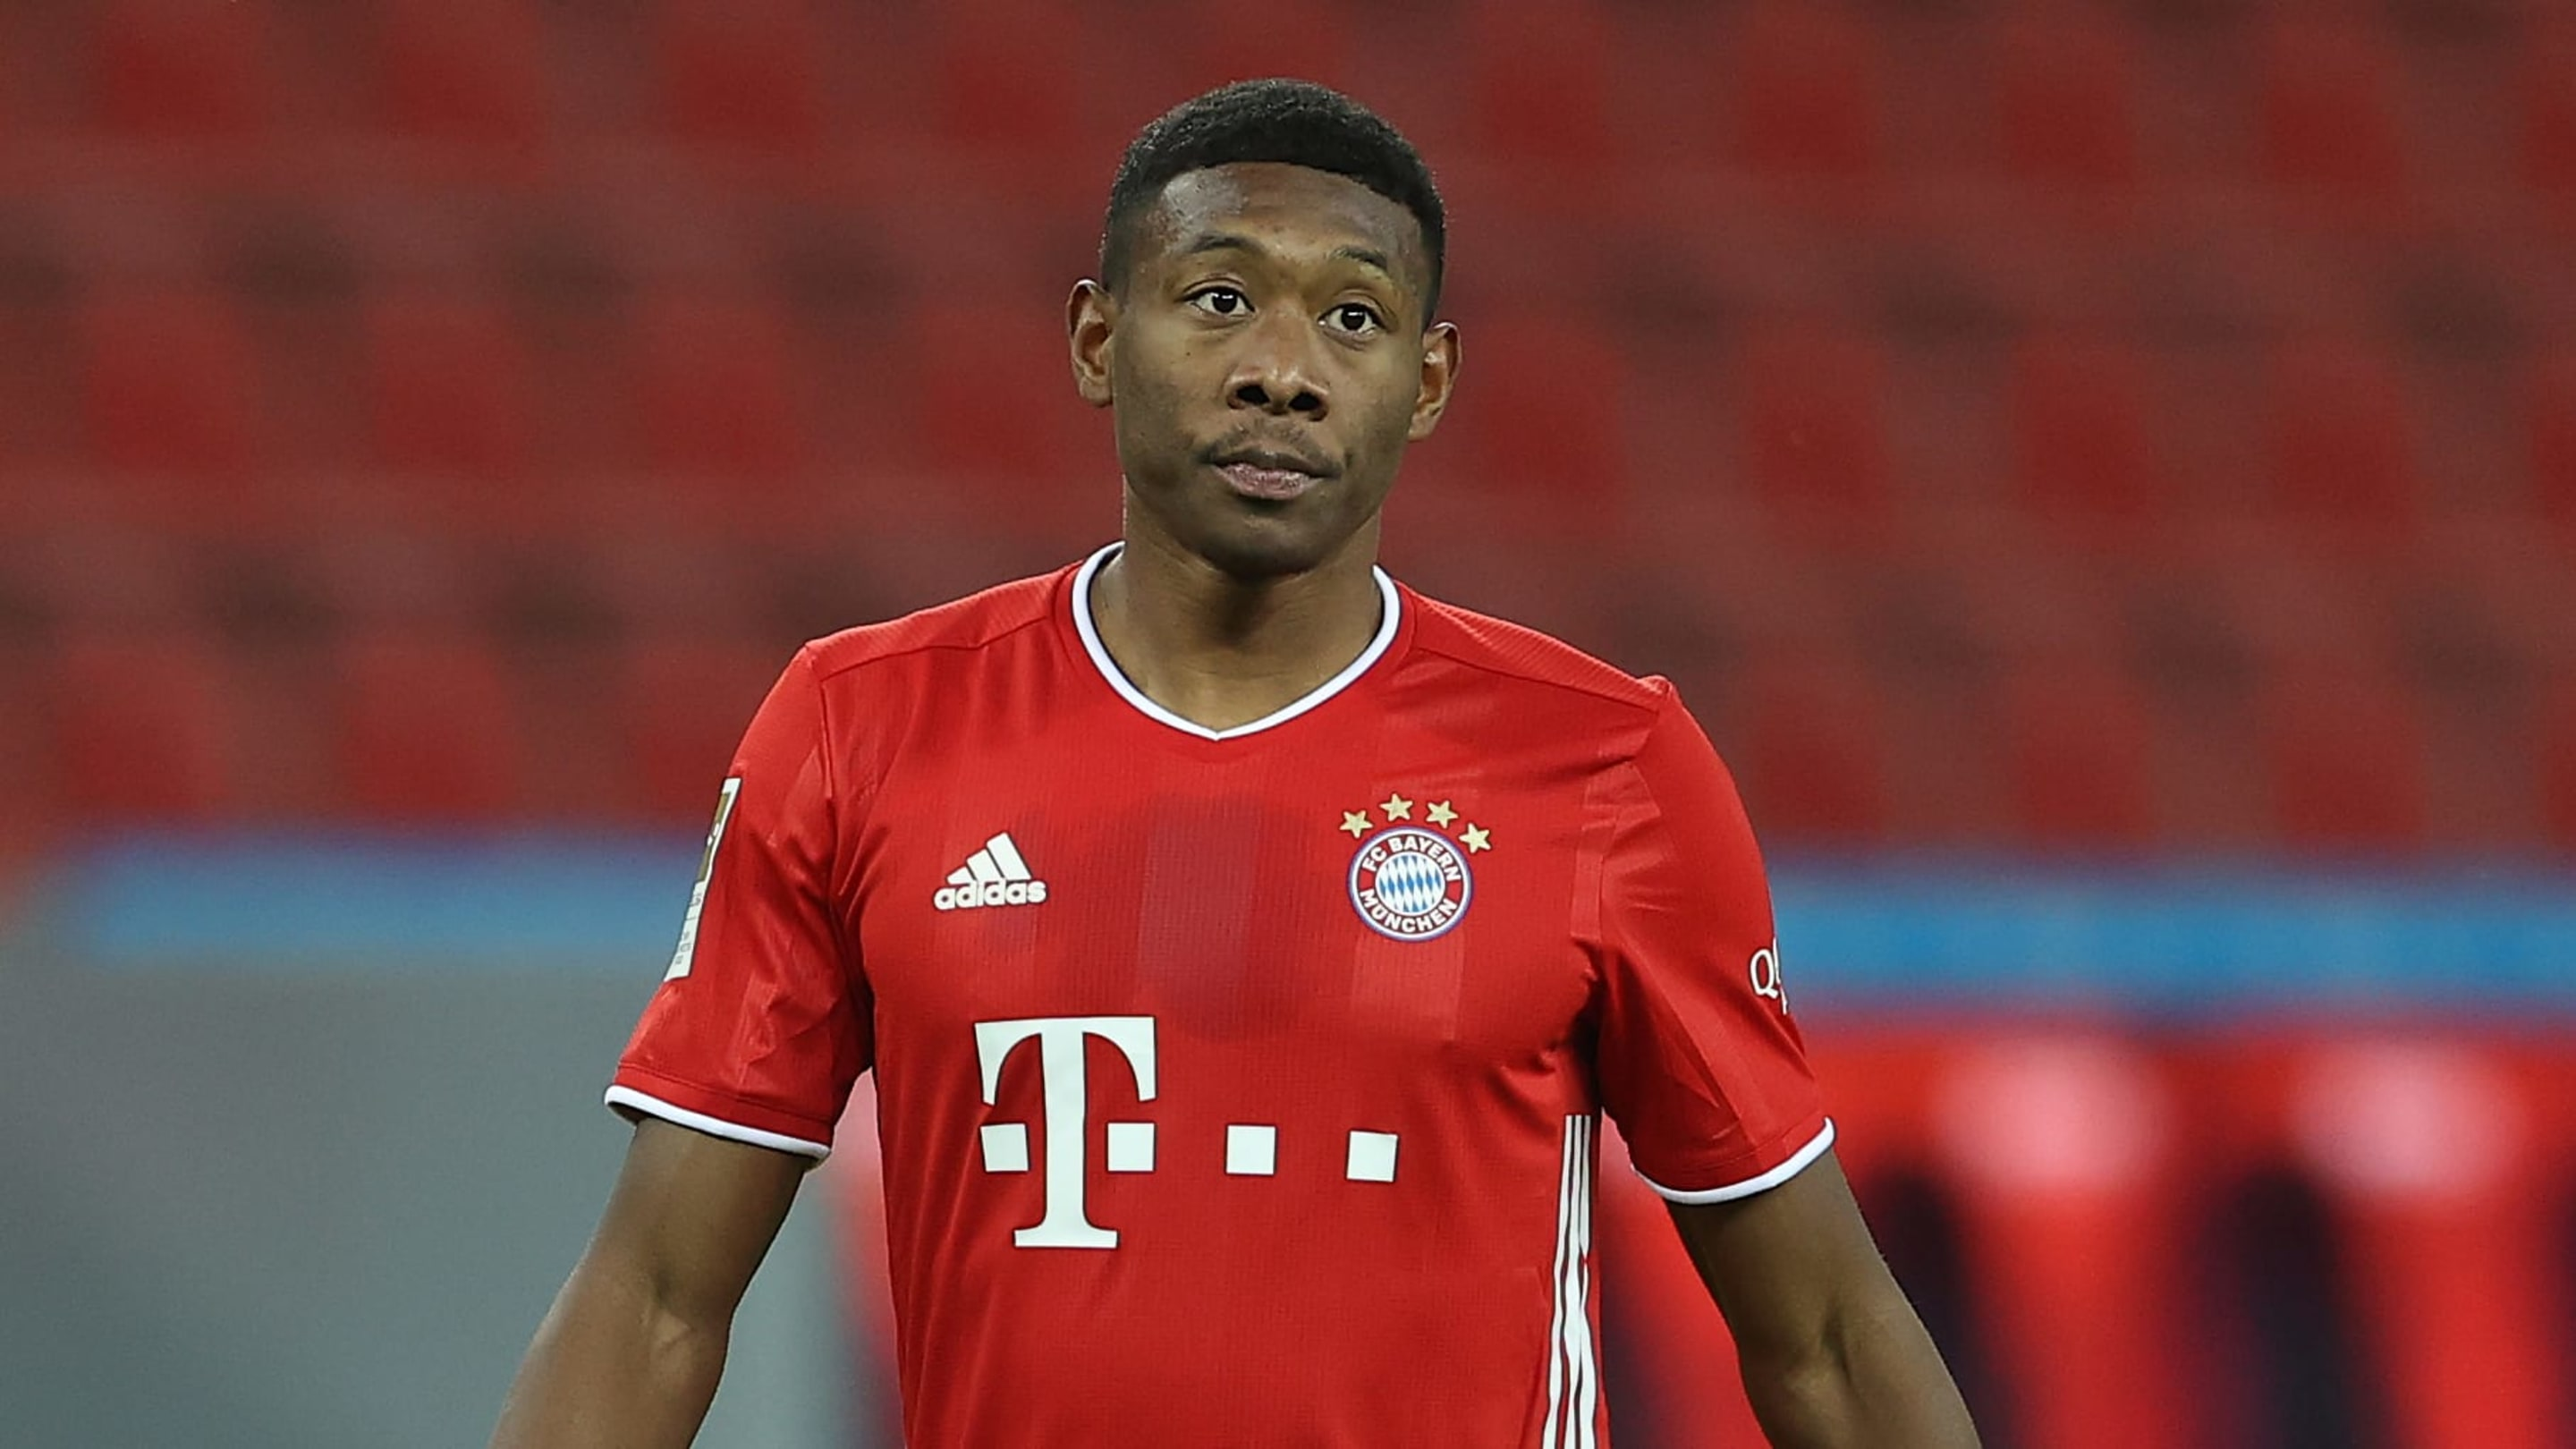 Manchester United Ready to Make Approach for Bayern Munich's David Alaba